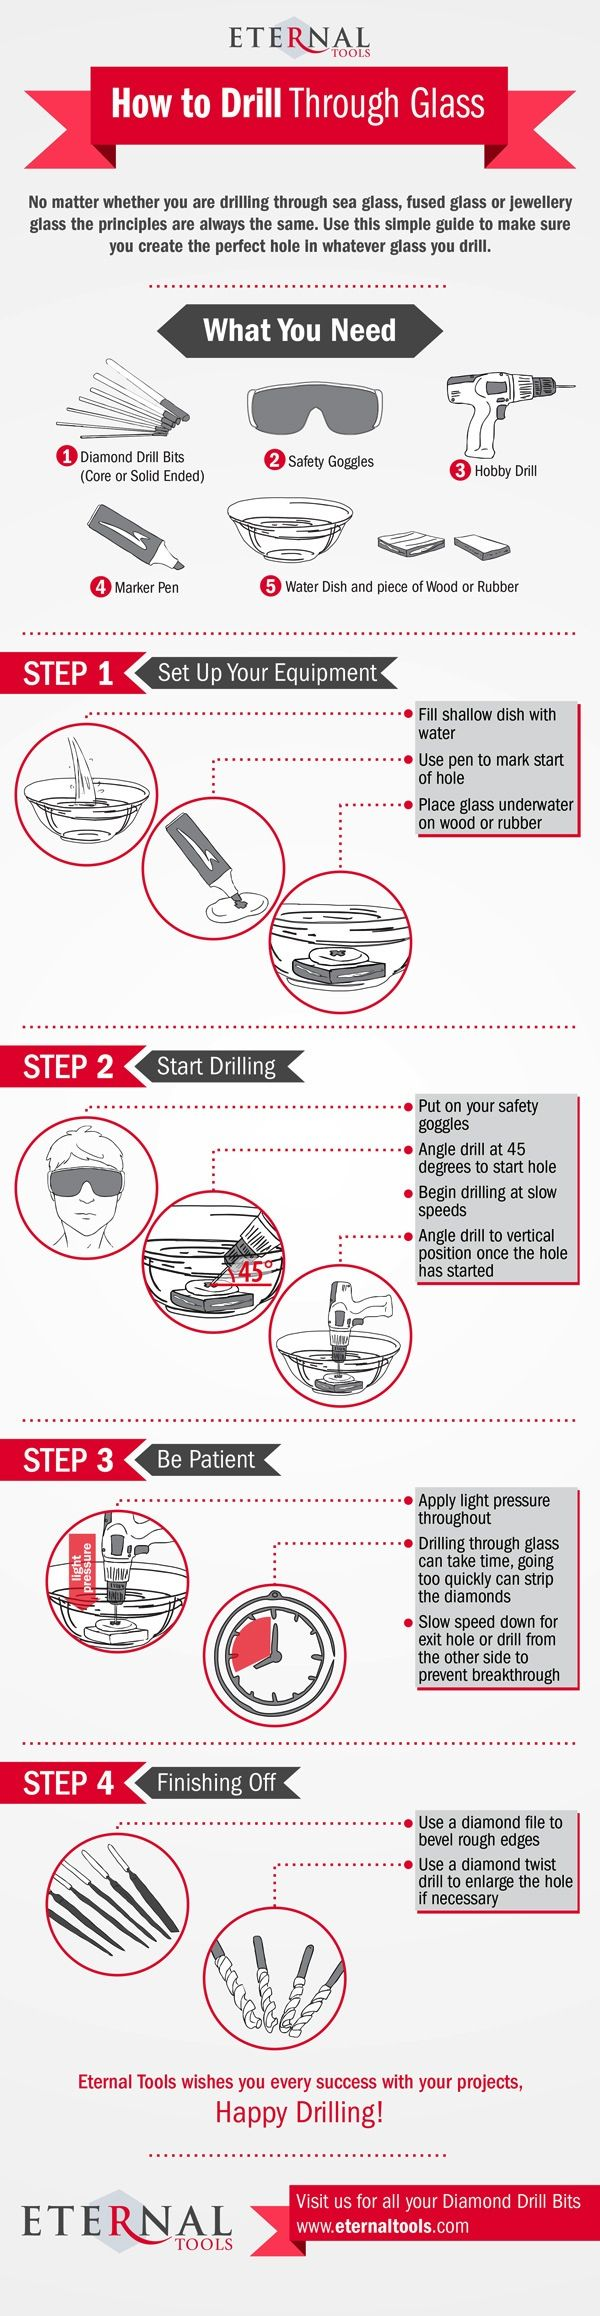 How to Drill Through Glass Infographic by Eternal Tools. 4 easy illustrated steps for use when drilling through sea glass, beach glass and fused glass. The principle is the same no matter what glass you need to drill through (except tempered glass)